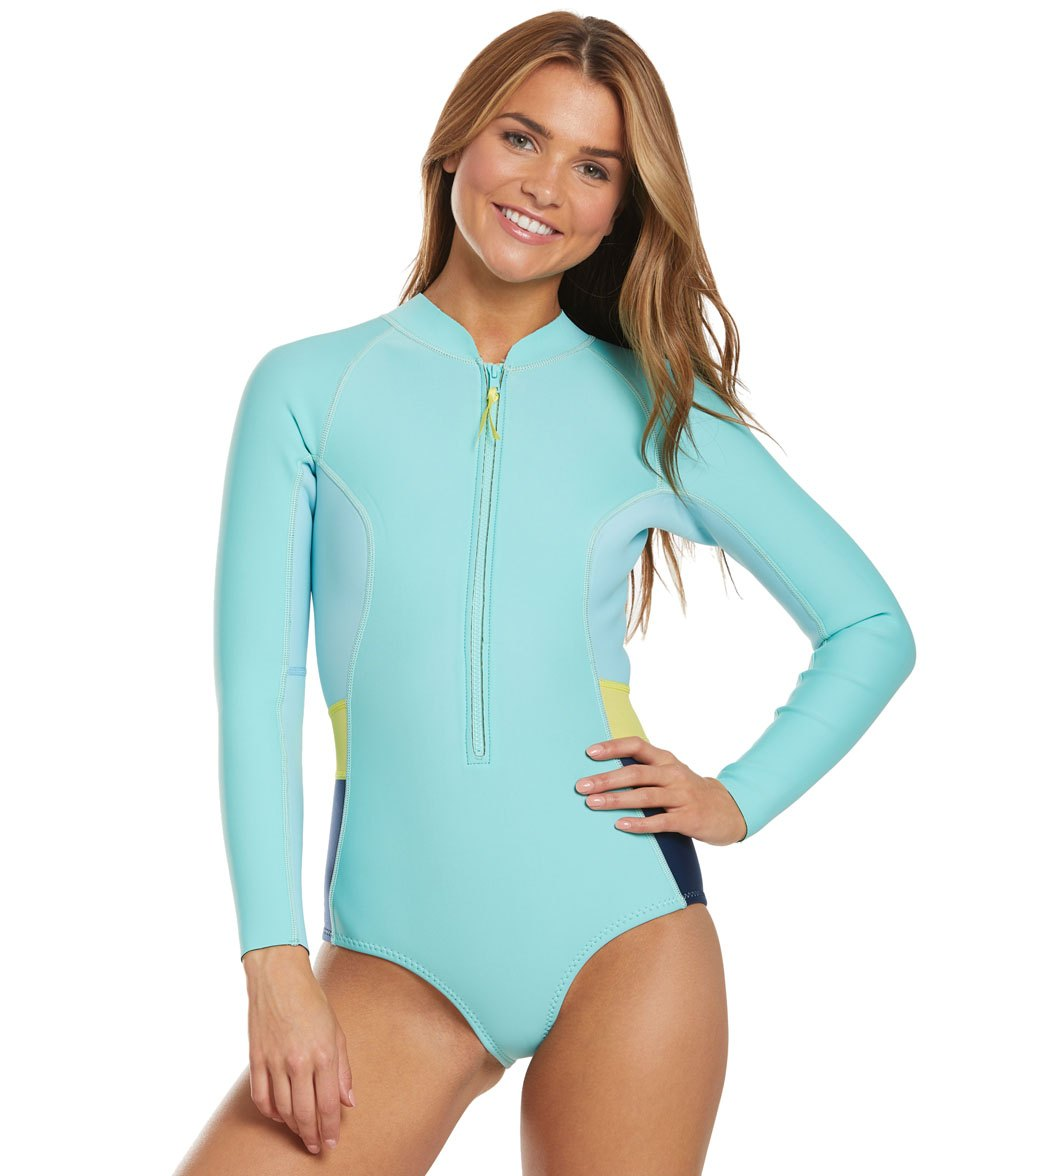 8096ef6f4ac Level Six Women's 1.2mm Neoprene Mystique Front Zip Long Sleeve One Piece  Swimsuit at SwimOutlet.com - Free Shipping